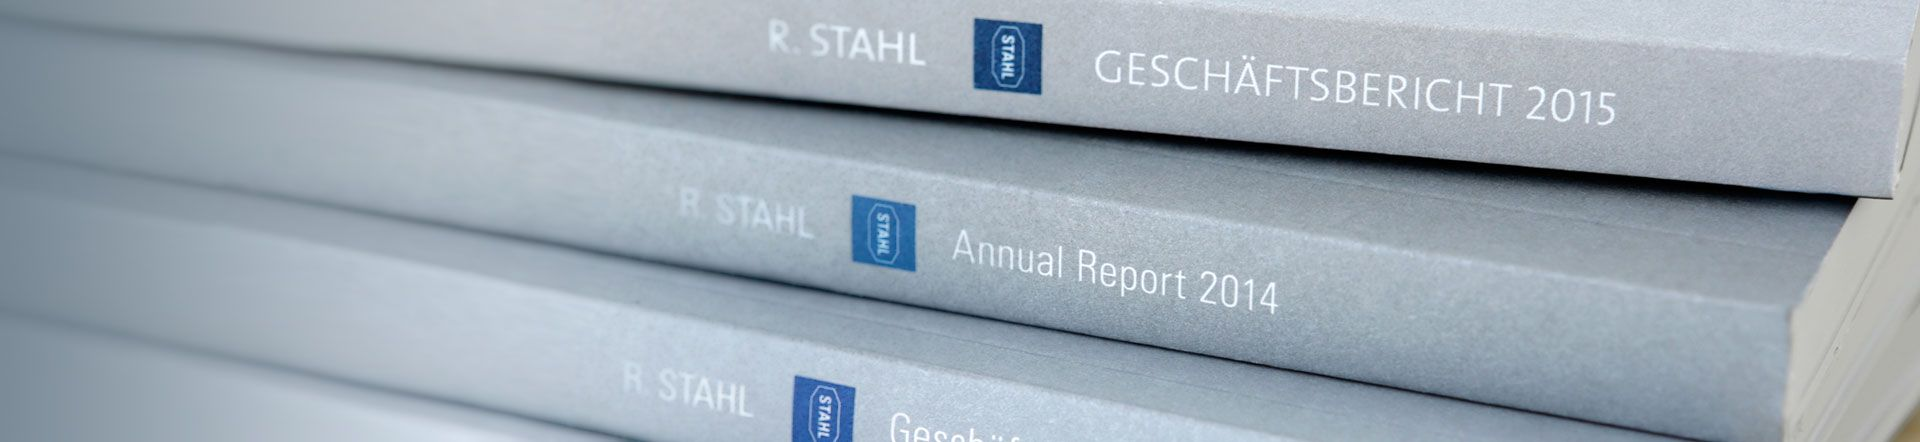 Ex financial reports R. STAHL